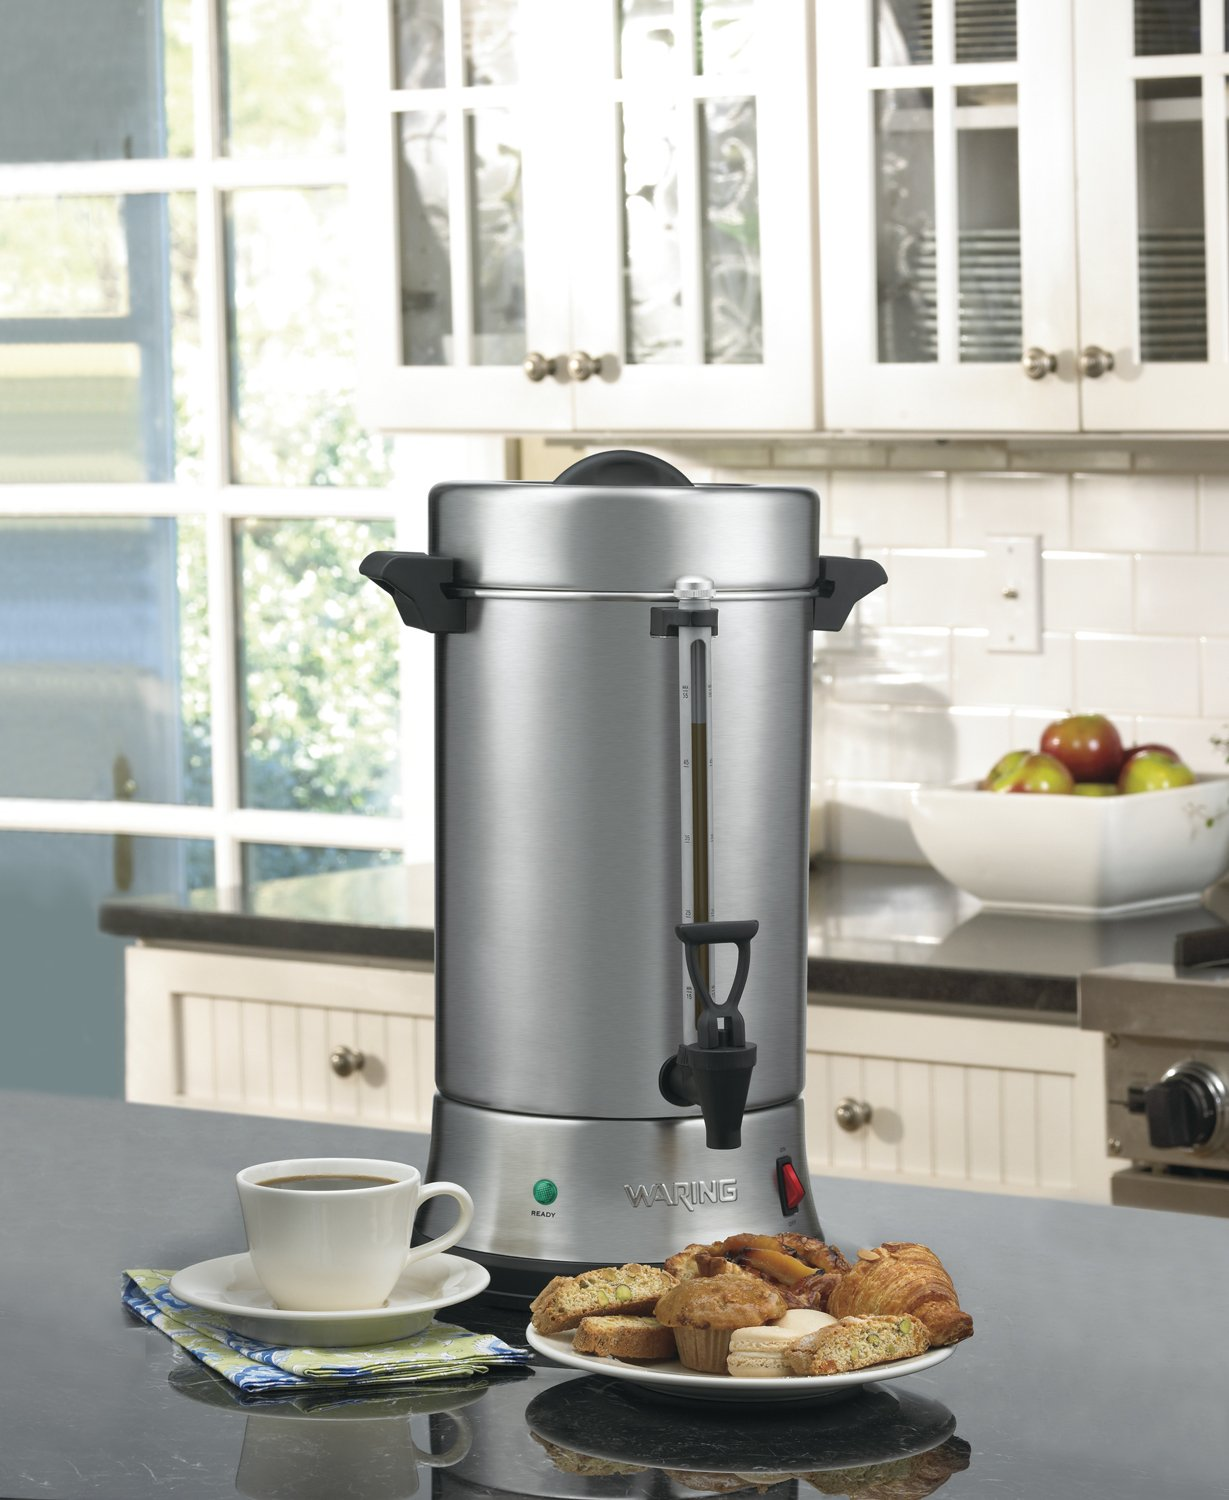 Waring Commercial WCU550 55-Cup Commercial Heavy Duty Stainless Steel Coffee Urn, Silver by Waring (Image #3)